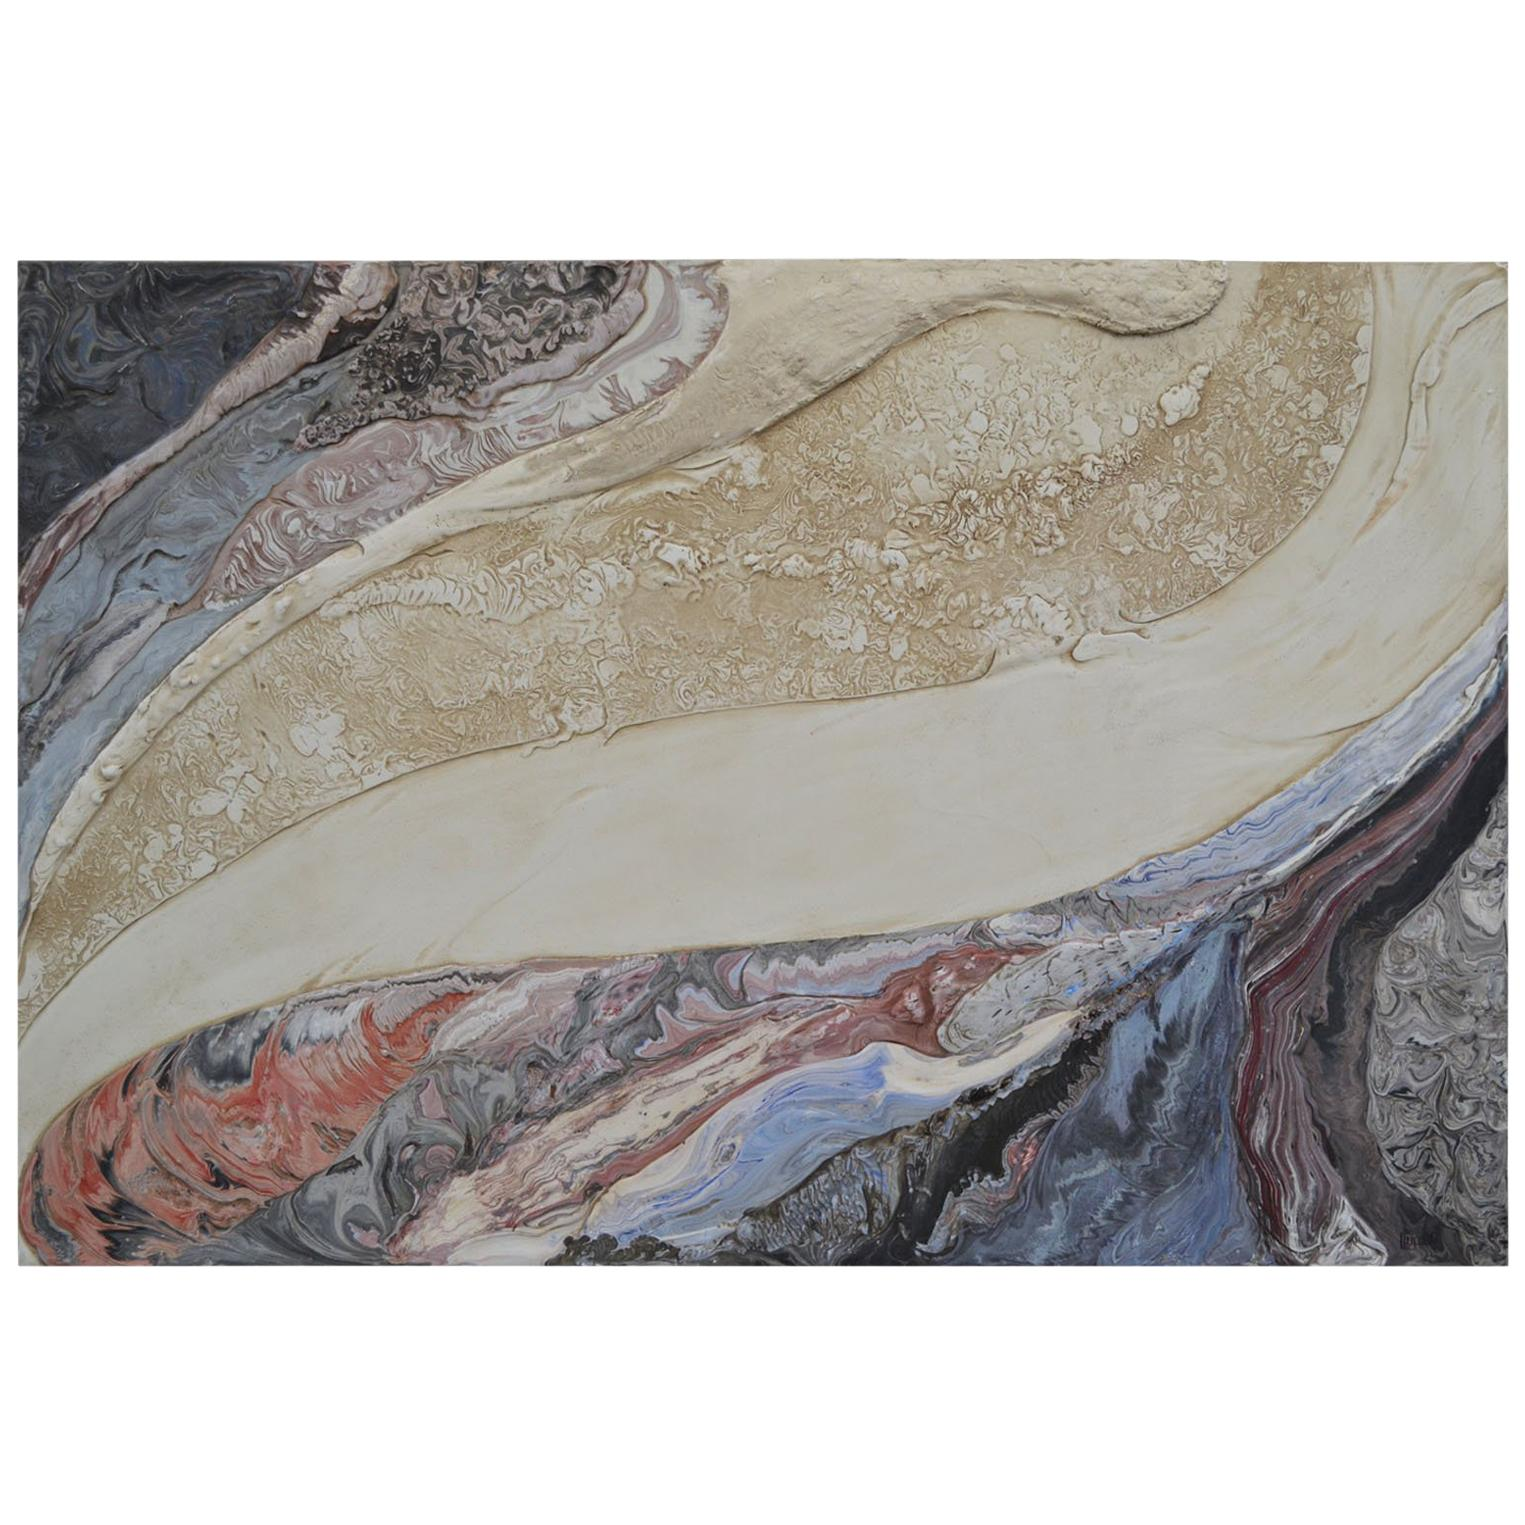 Abstract art Wall Panel  polychrome Scagliola decoration handmade bas-relief